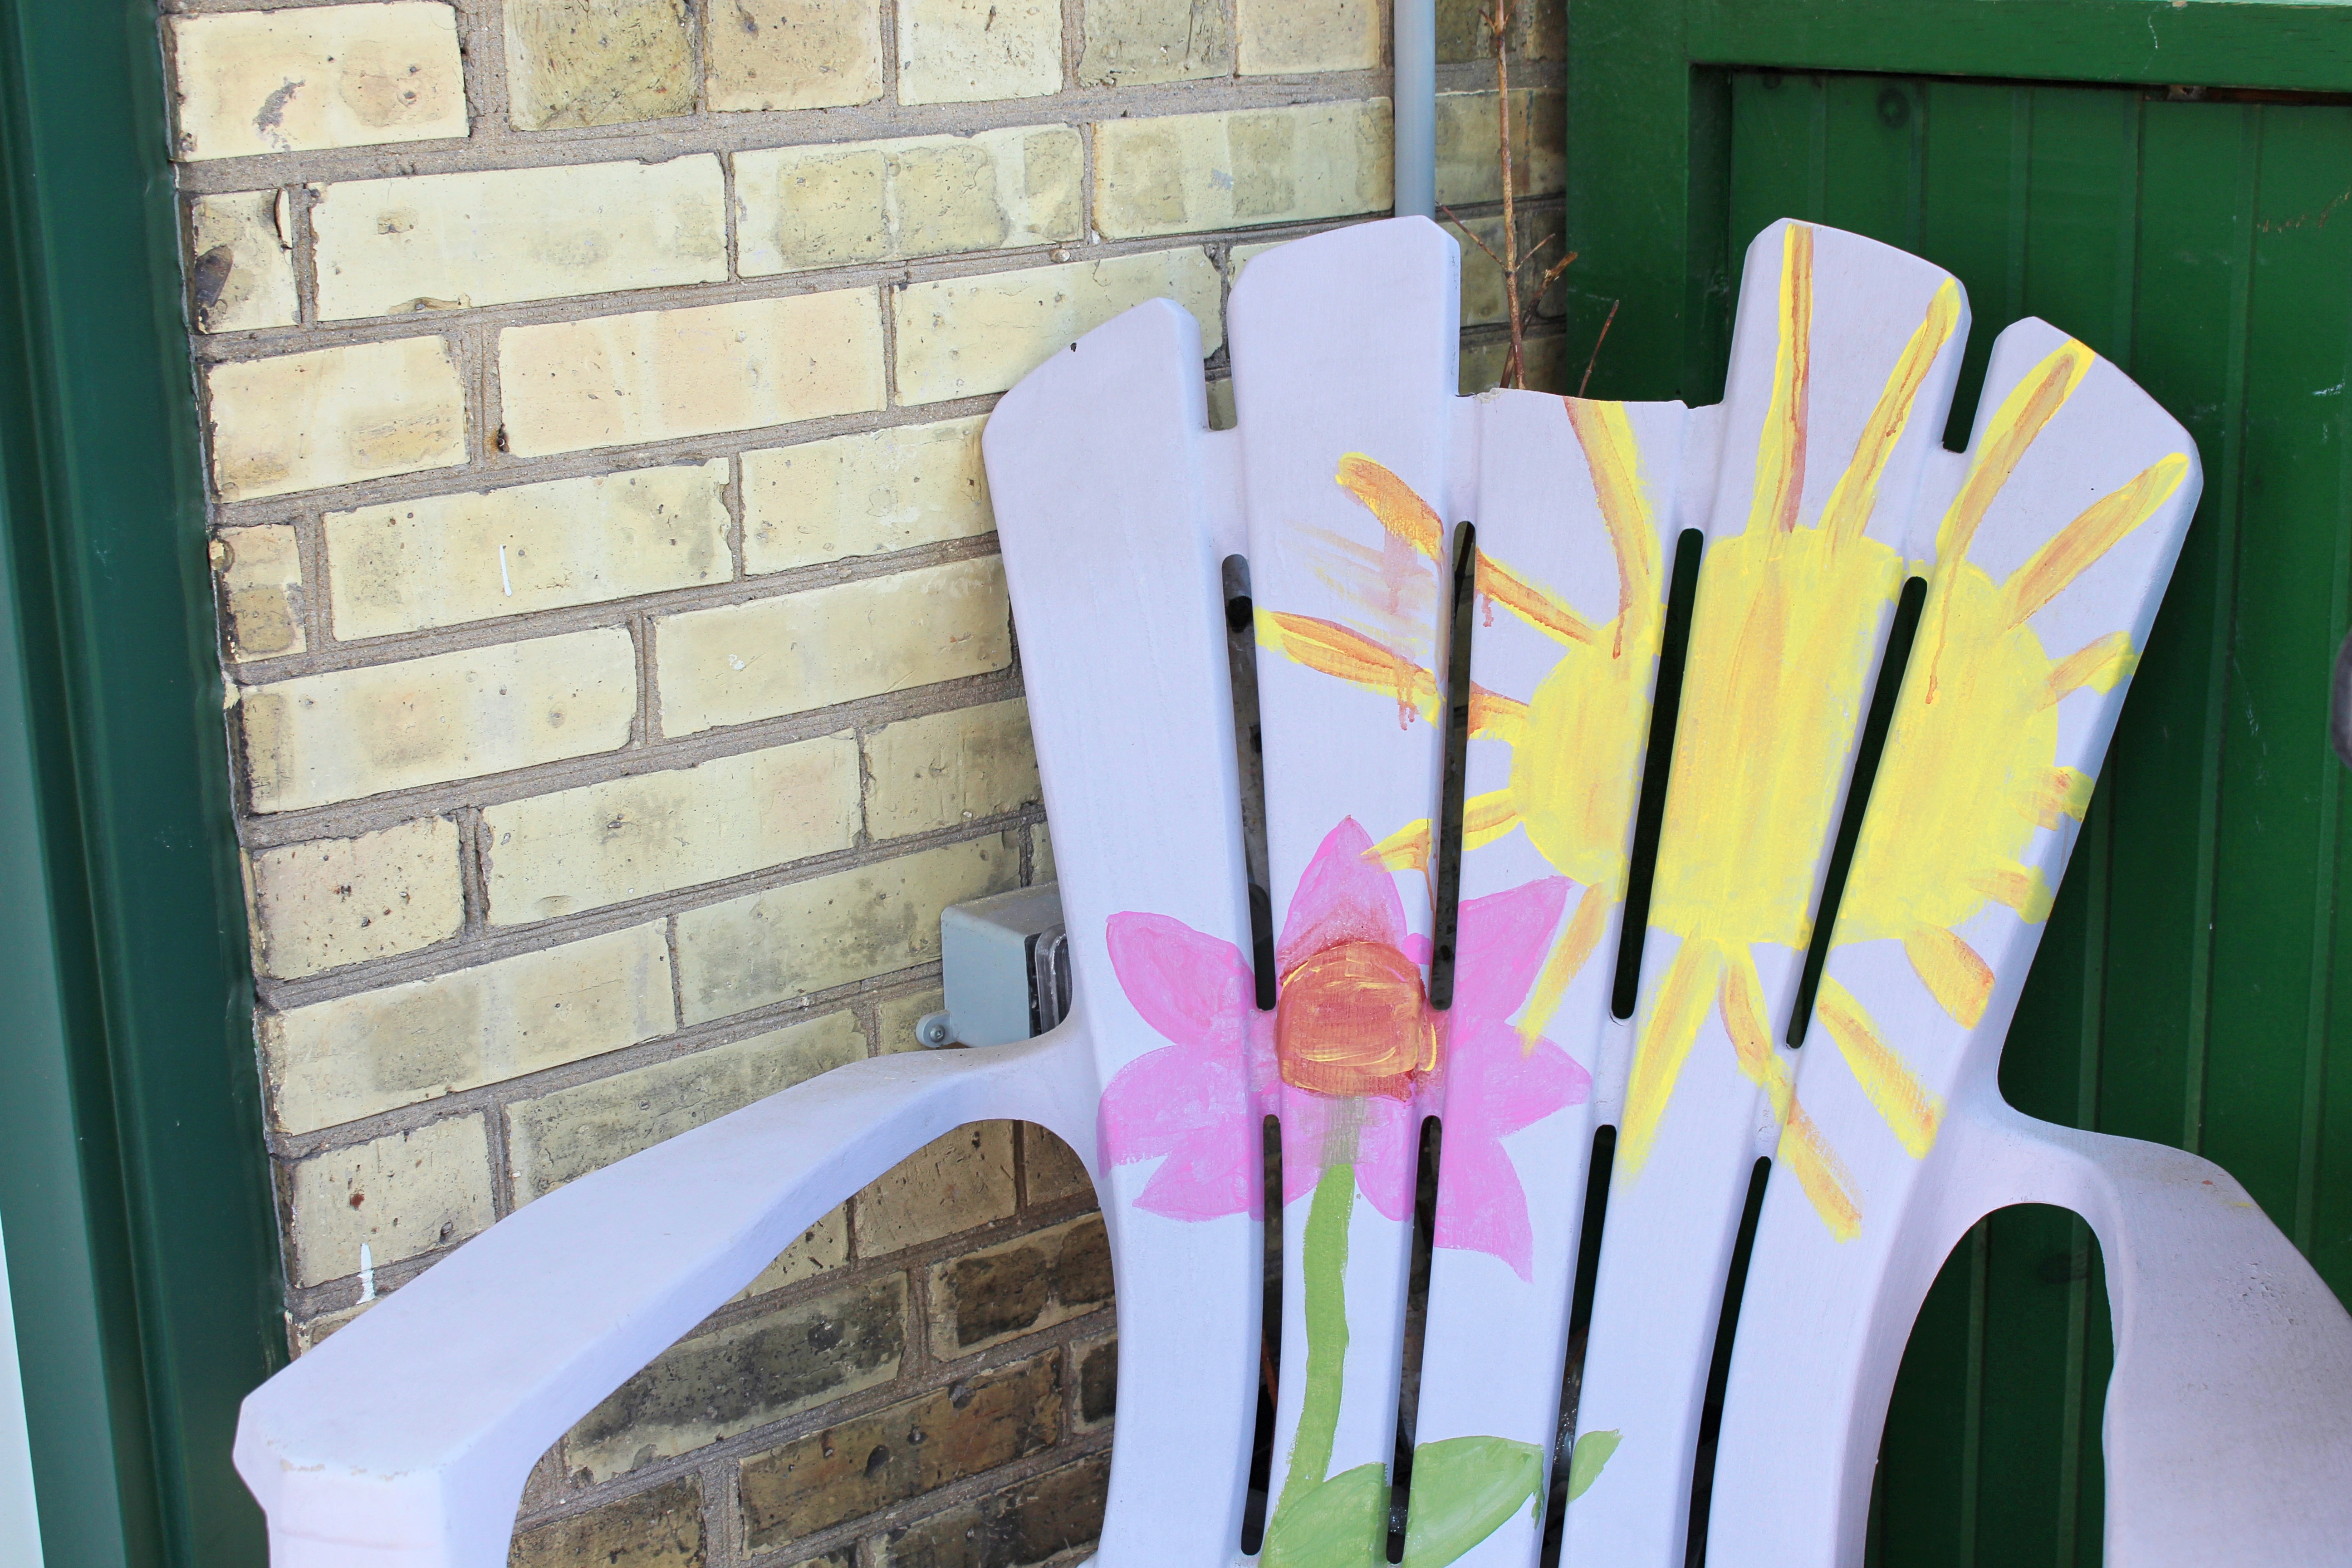 Image of a purple deck chair representing Vera's Place.